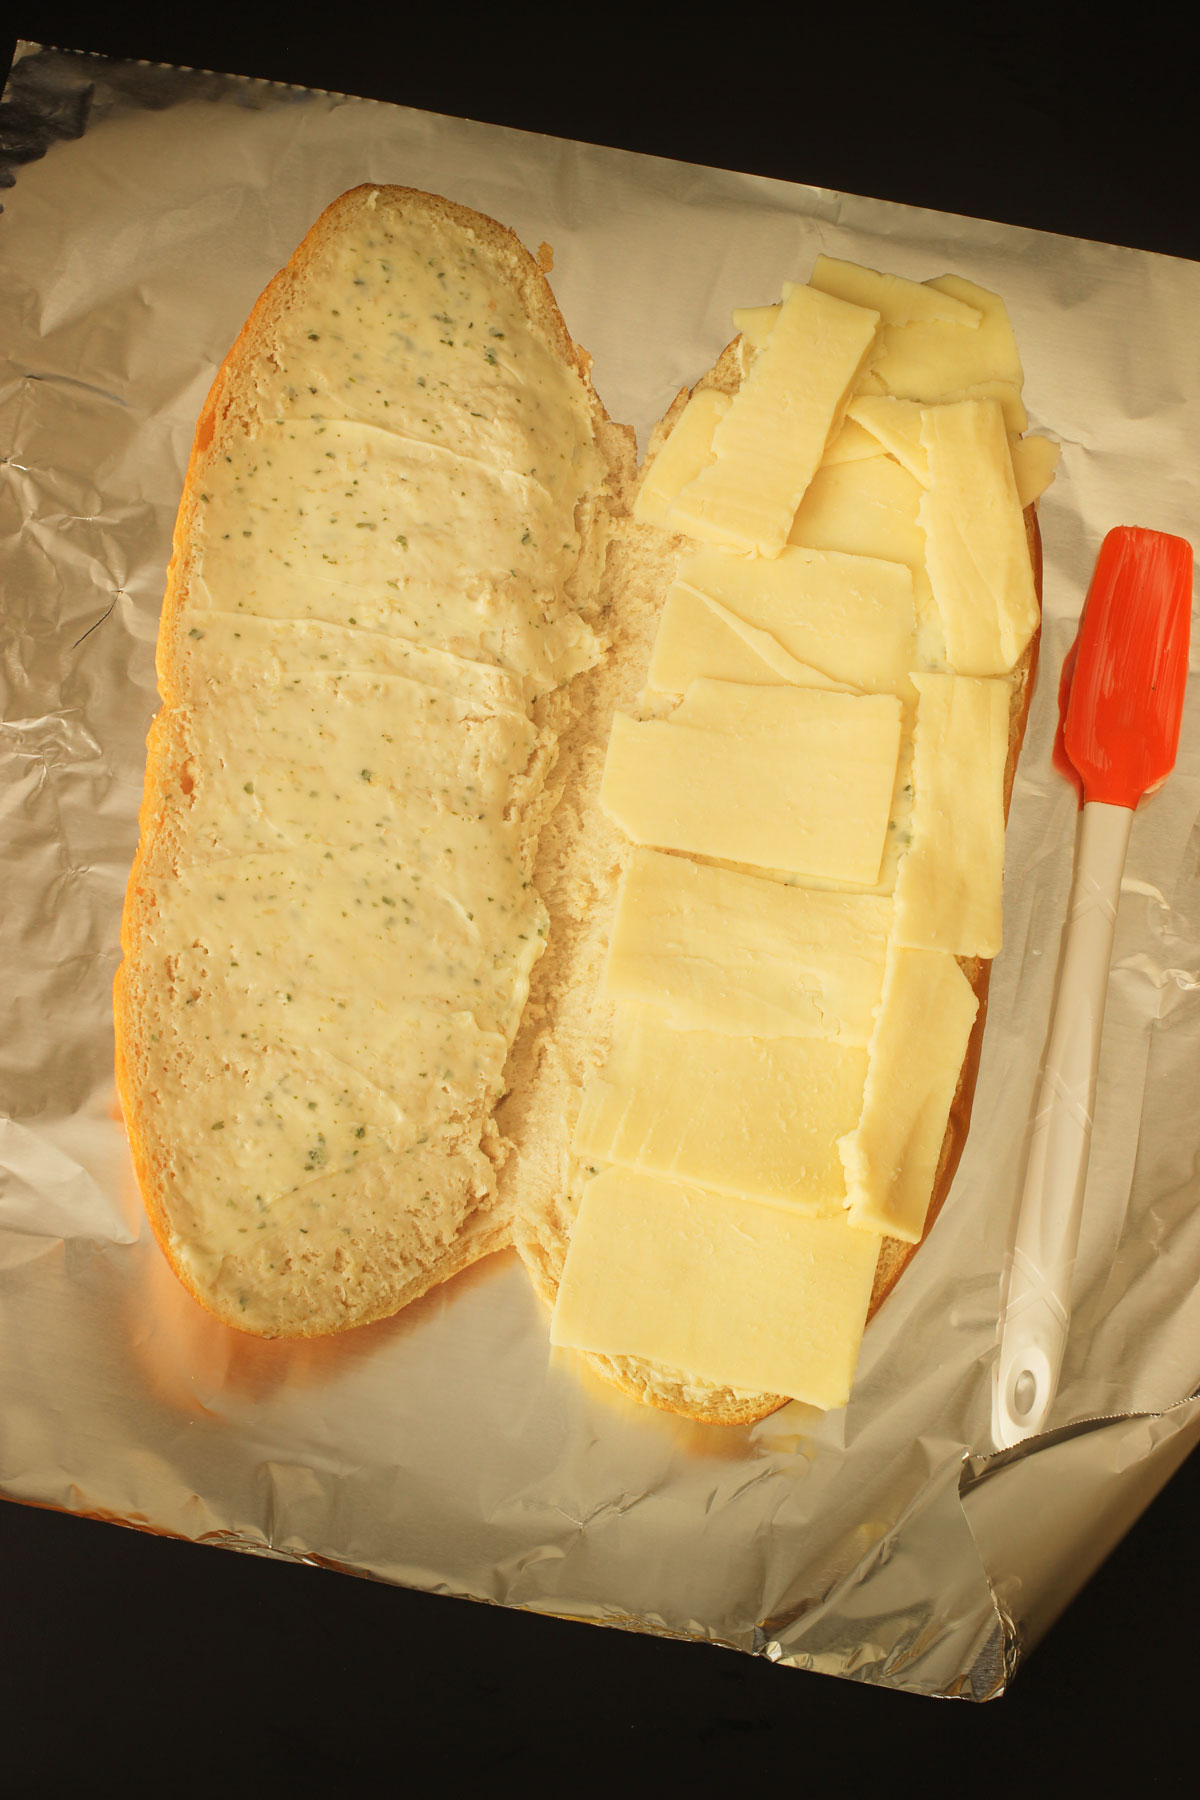 cheese layered on one side of the large French loaf on the sheet of aluminum foil.